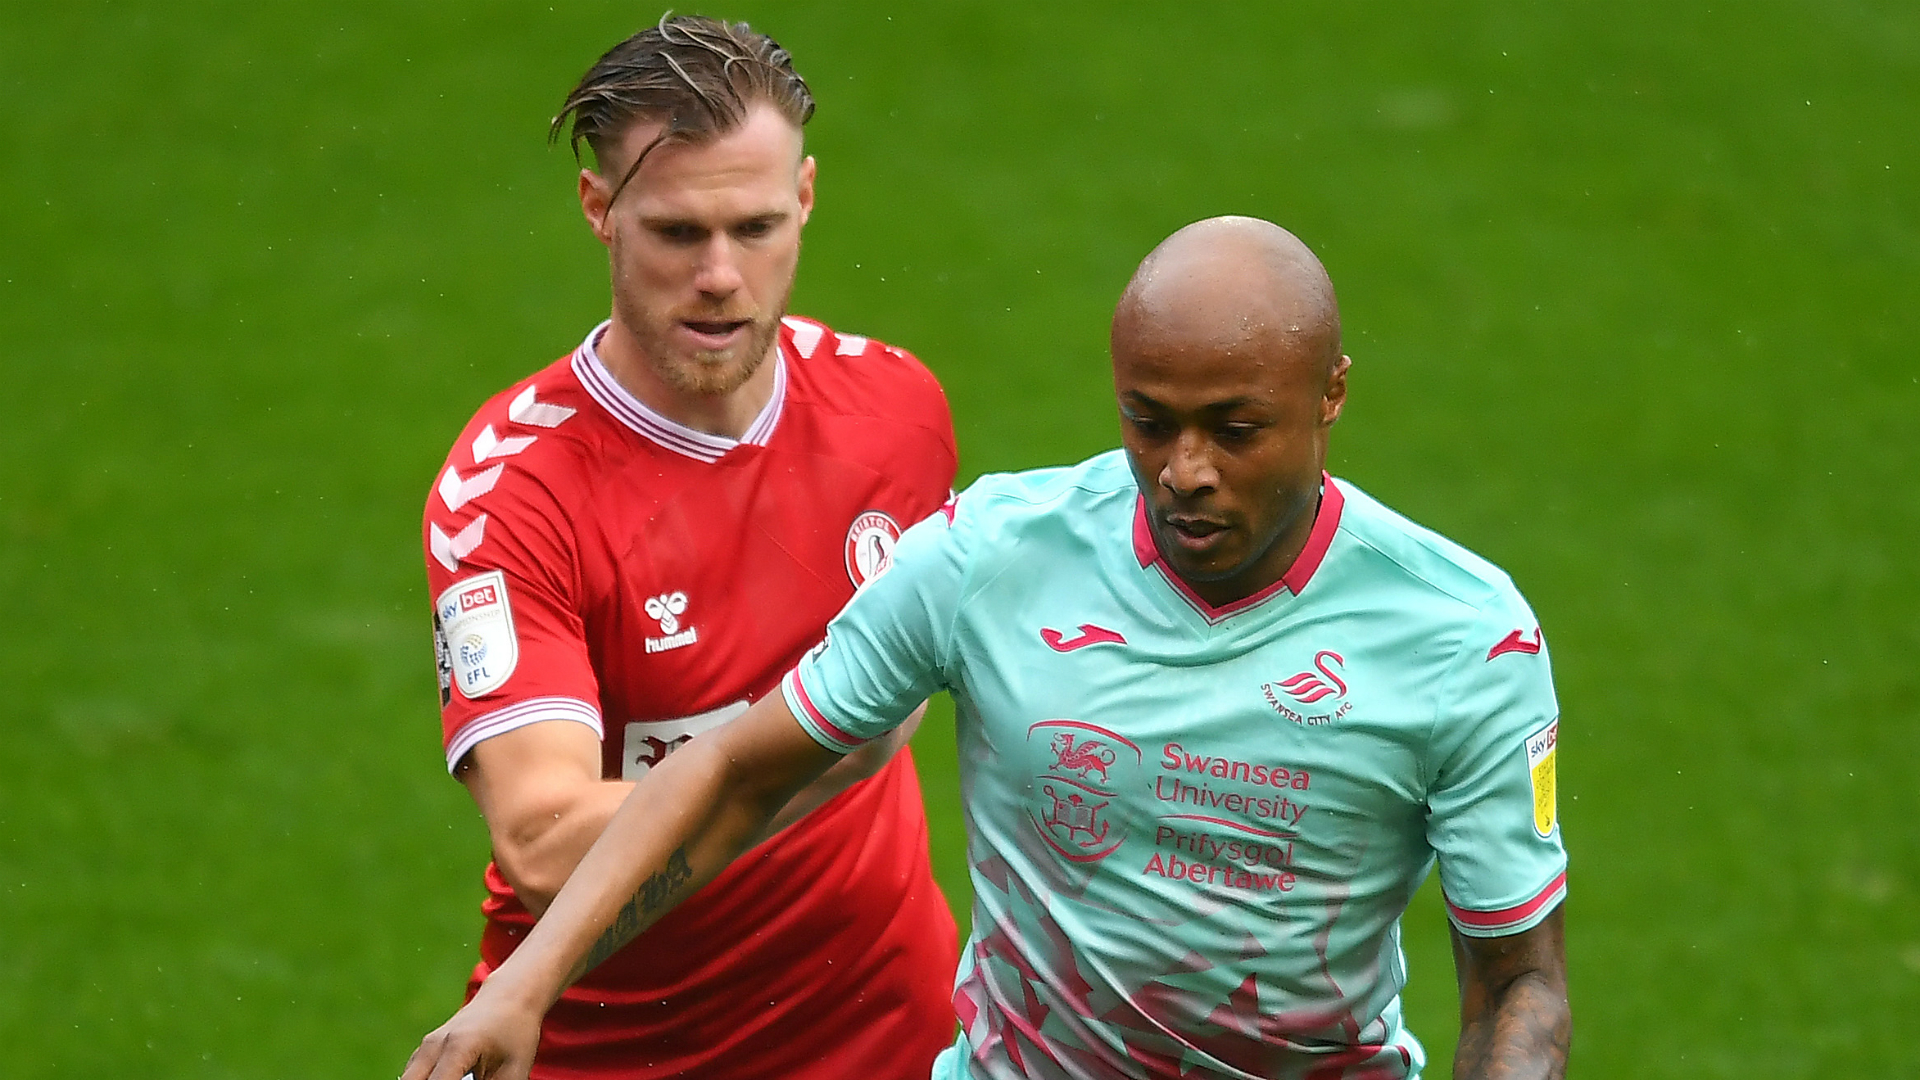 Ayew and Swansea scale over Ladapo's strike for Rotherham United in Championship